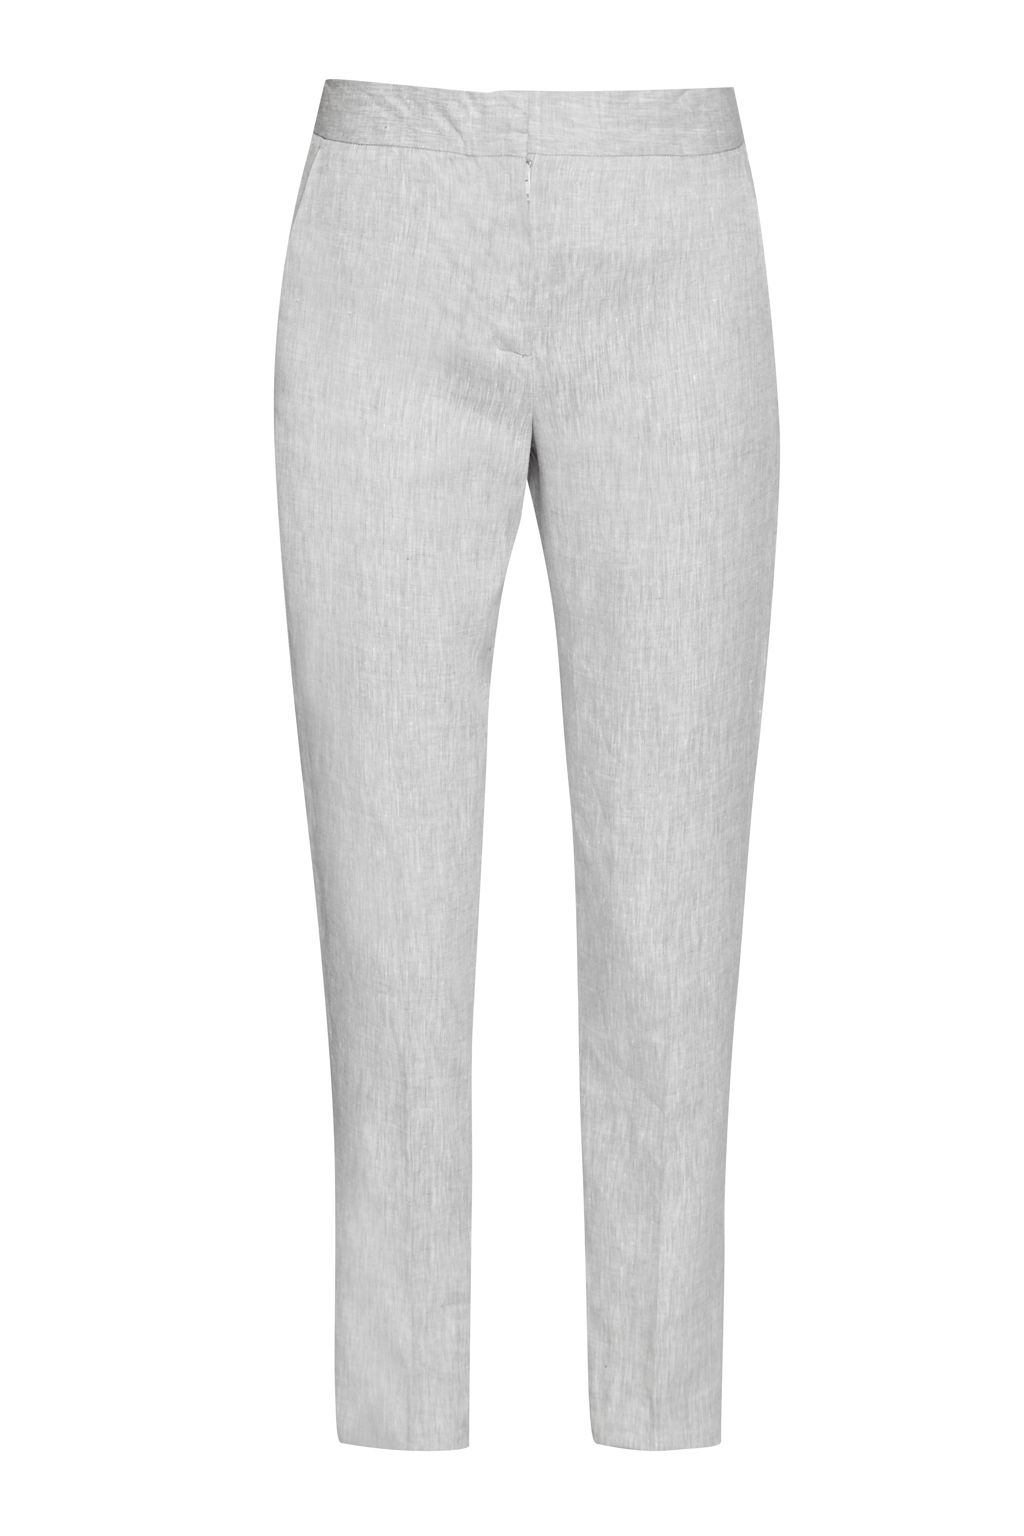 French Connection Summer Linen Trousers, Grey